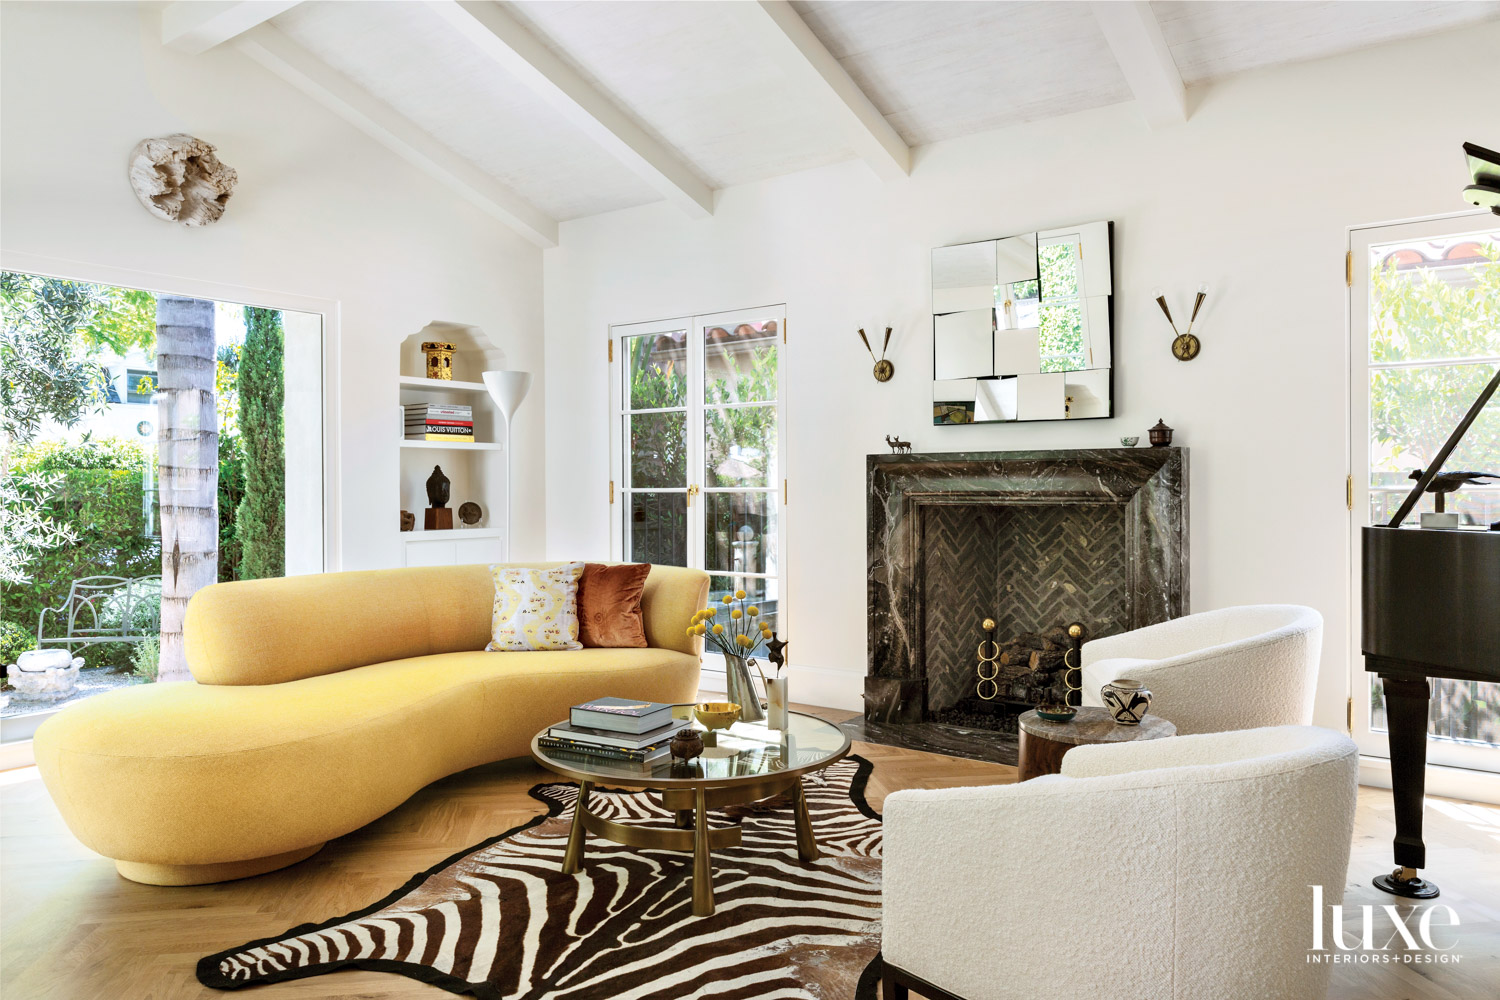 Living room with large yellow...